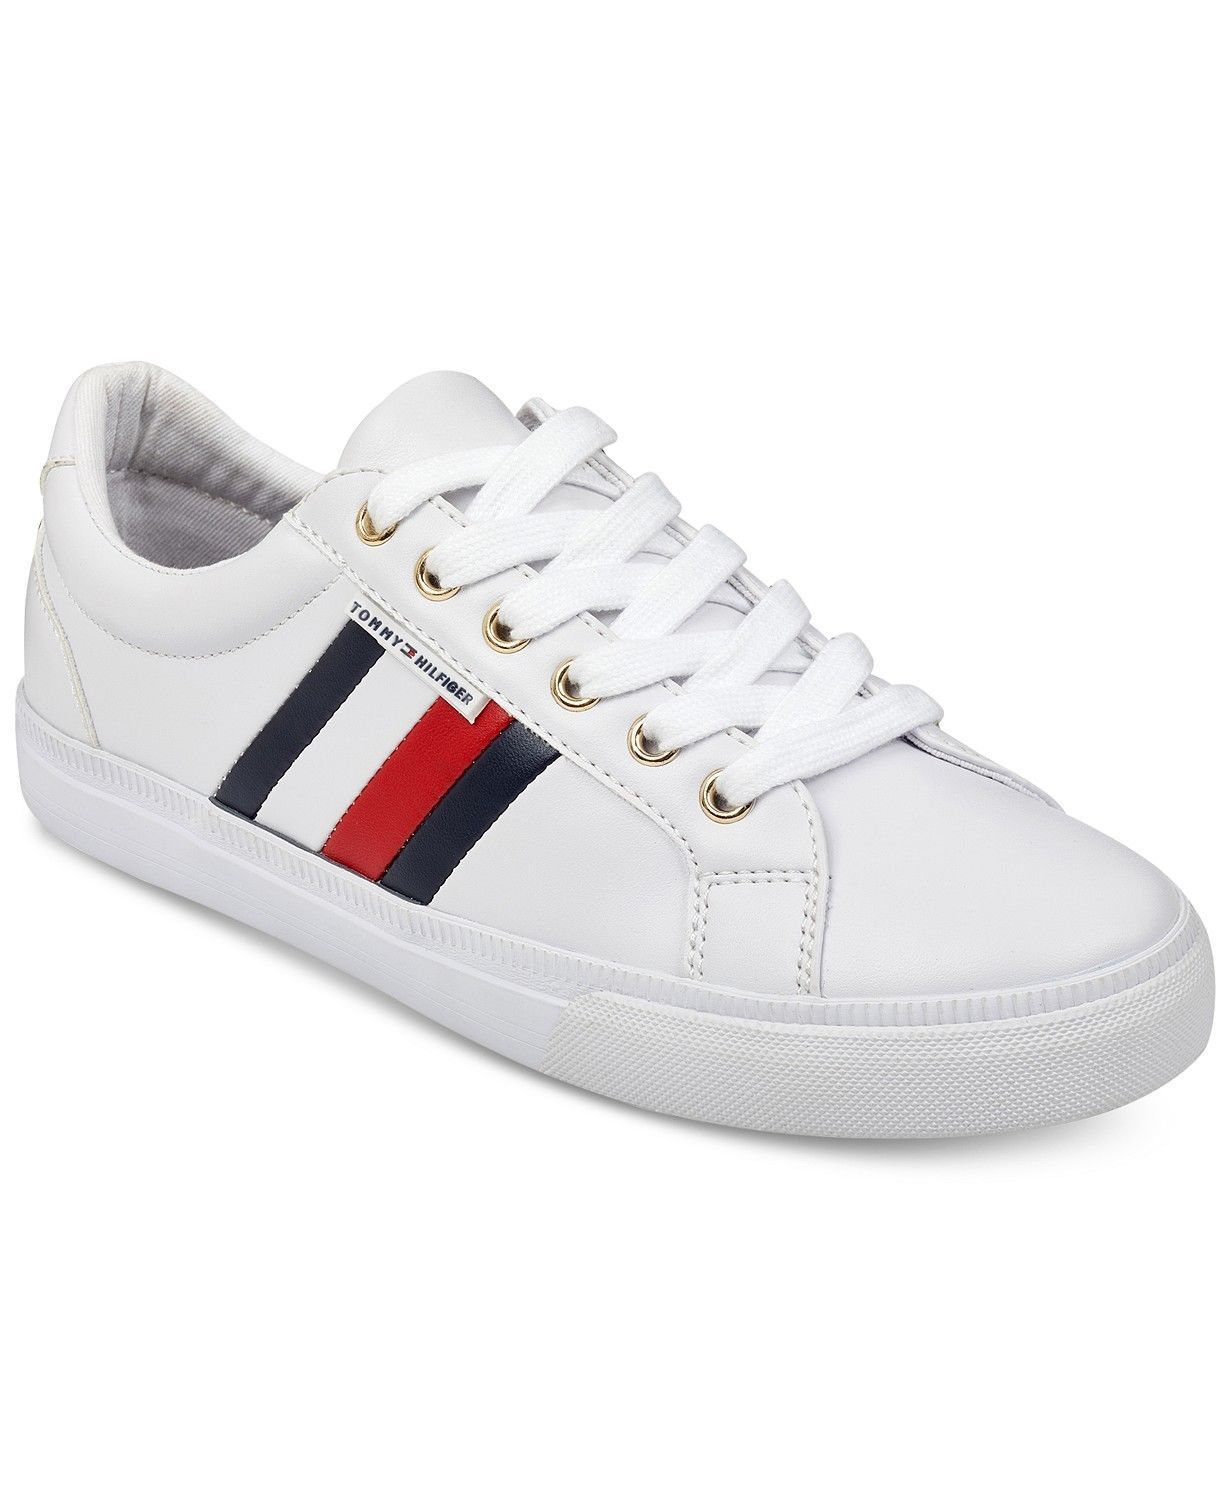 Tommy Hilfiger Women's Lightz Lace-Up Leather Fashion Sneakers Shoes White